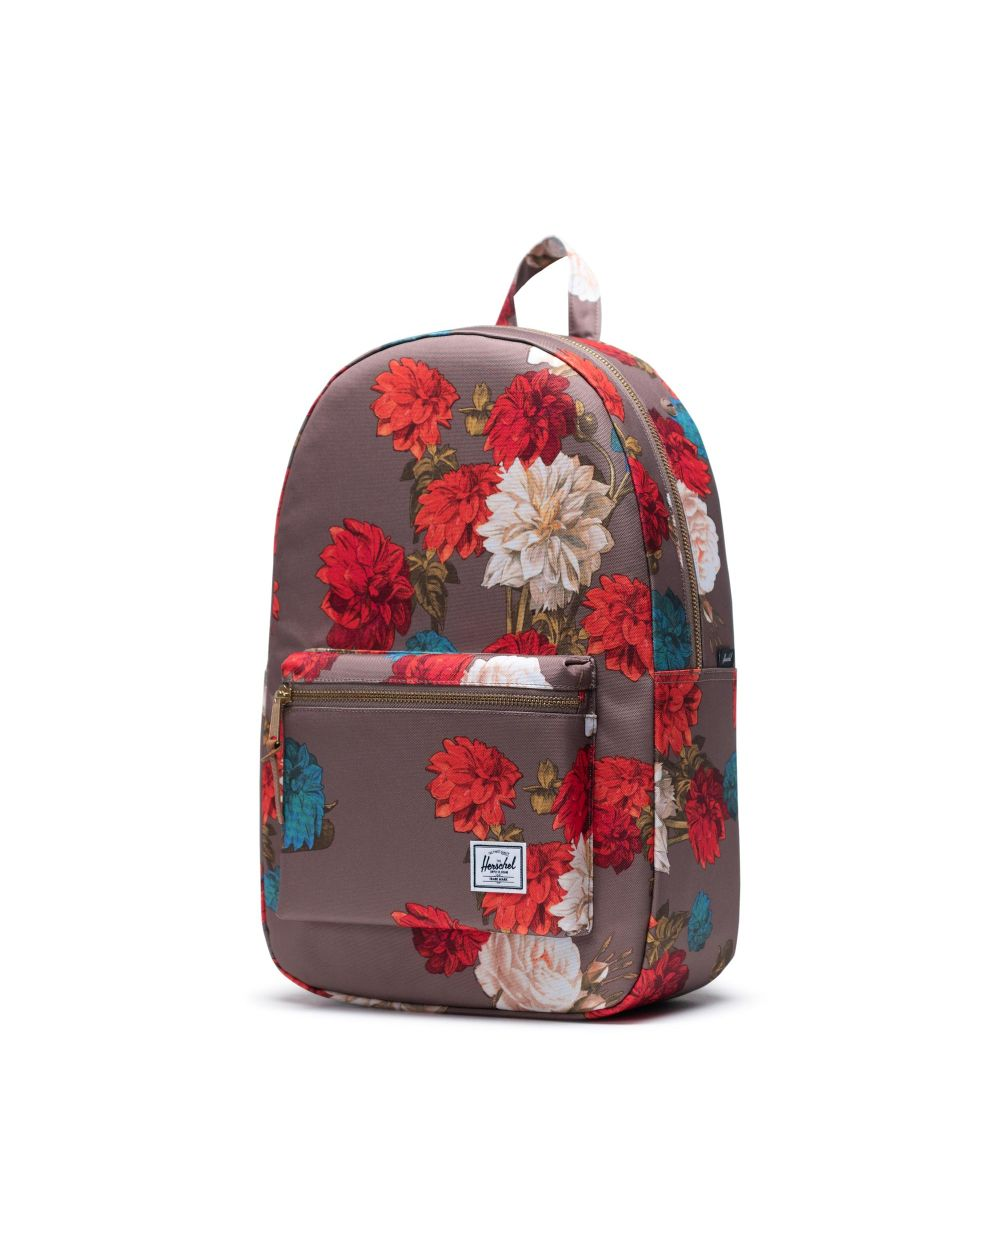 SETTLEMENT BACKPACK - VINTAGE FLORAL PINE BARK